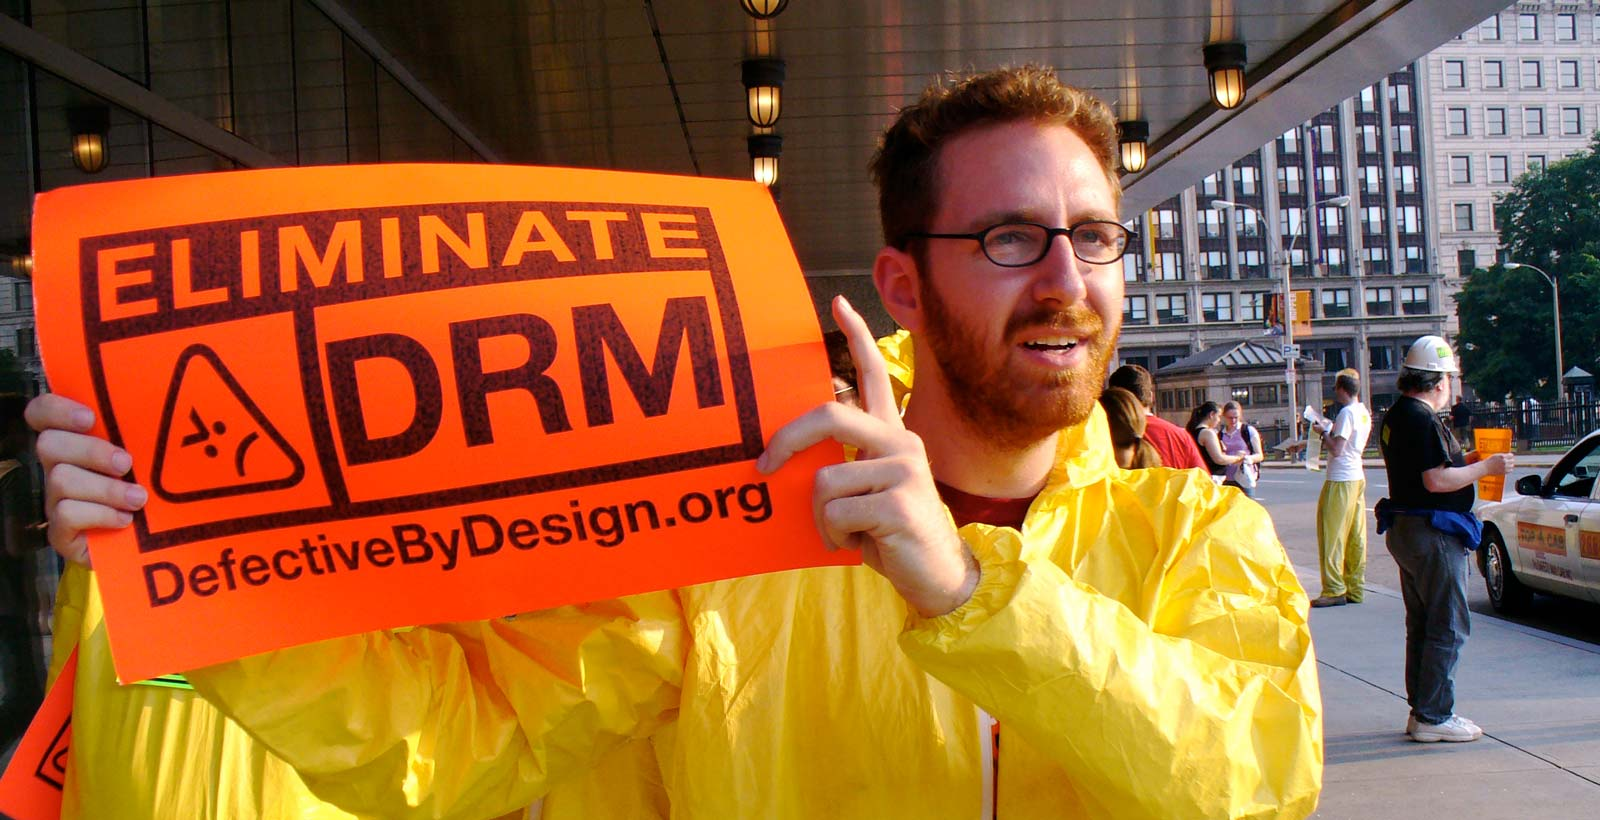 Photo prise lors d'une manifestation contre les DRM à Boston en 2007 (Photo : Wikimedia).